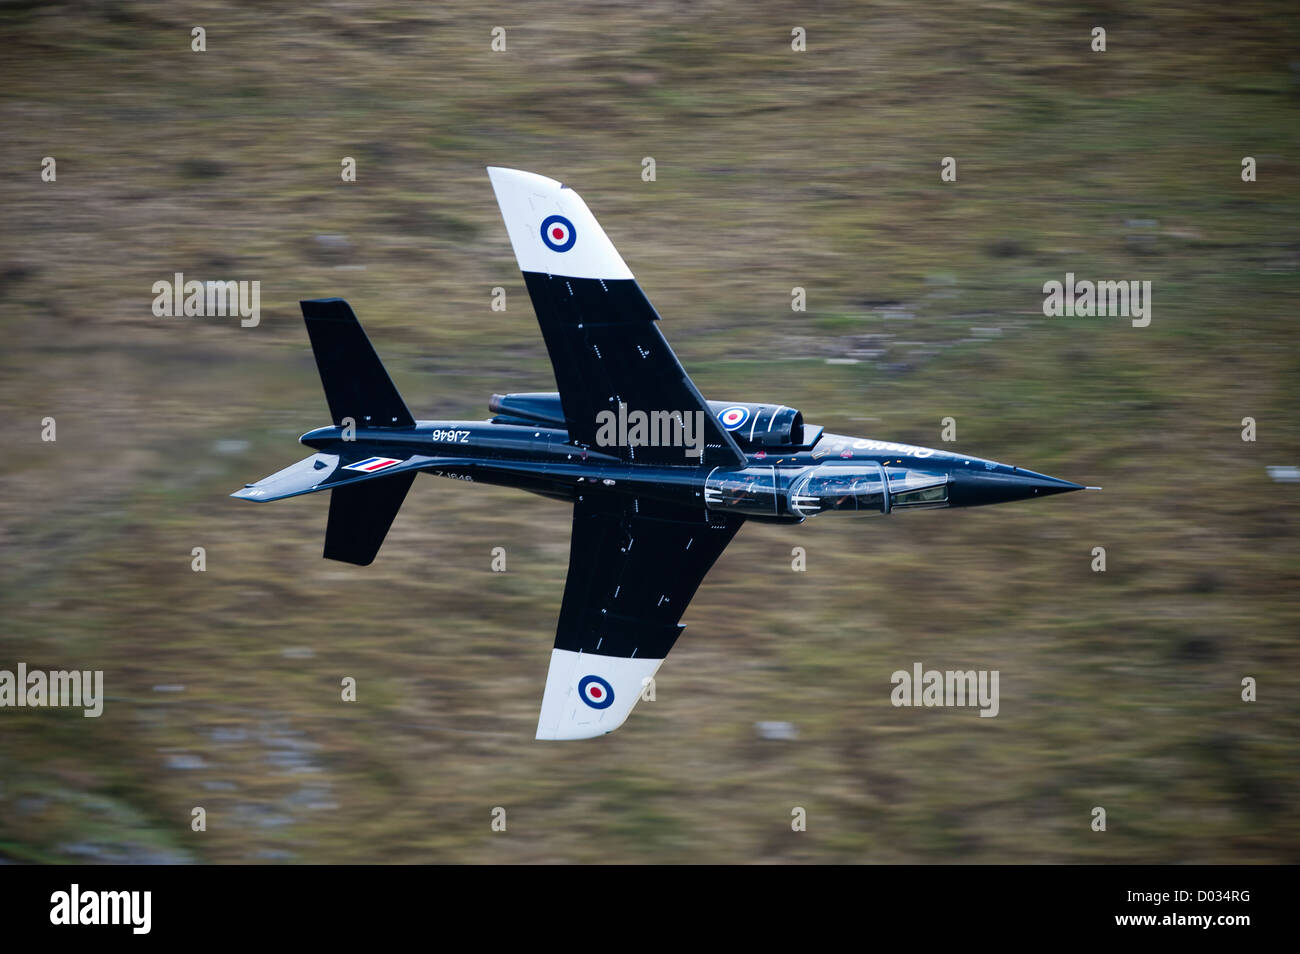 Alpha Jet operated by by QinetiQ Boscombe Down low level flying in the mach loop north Wales. - Stock Image